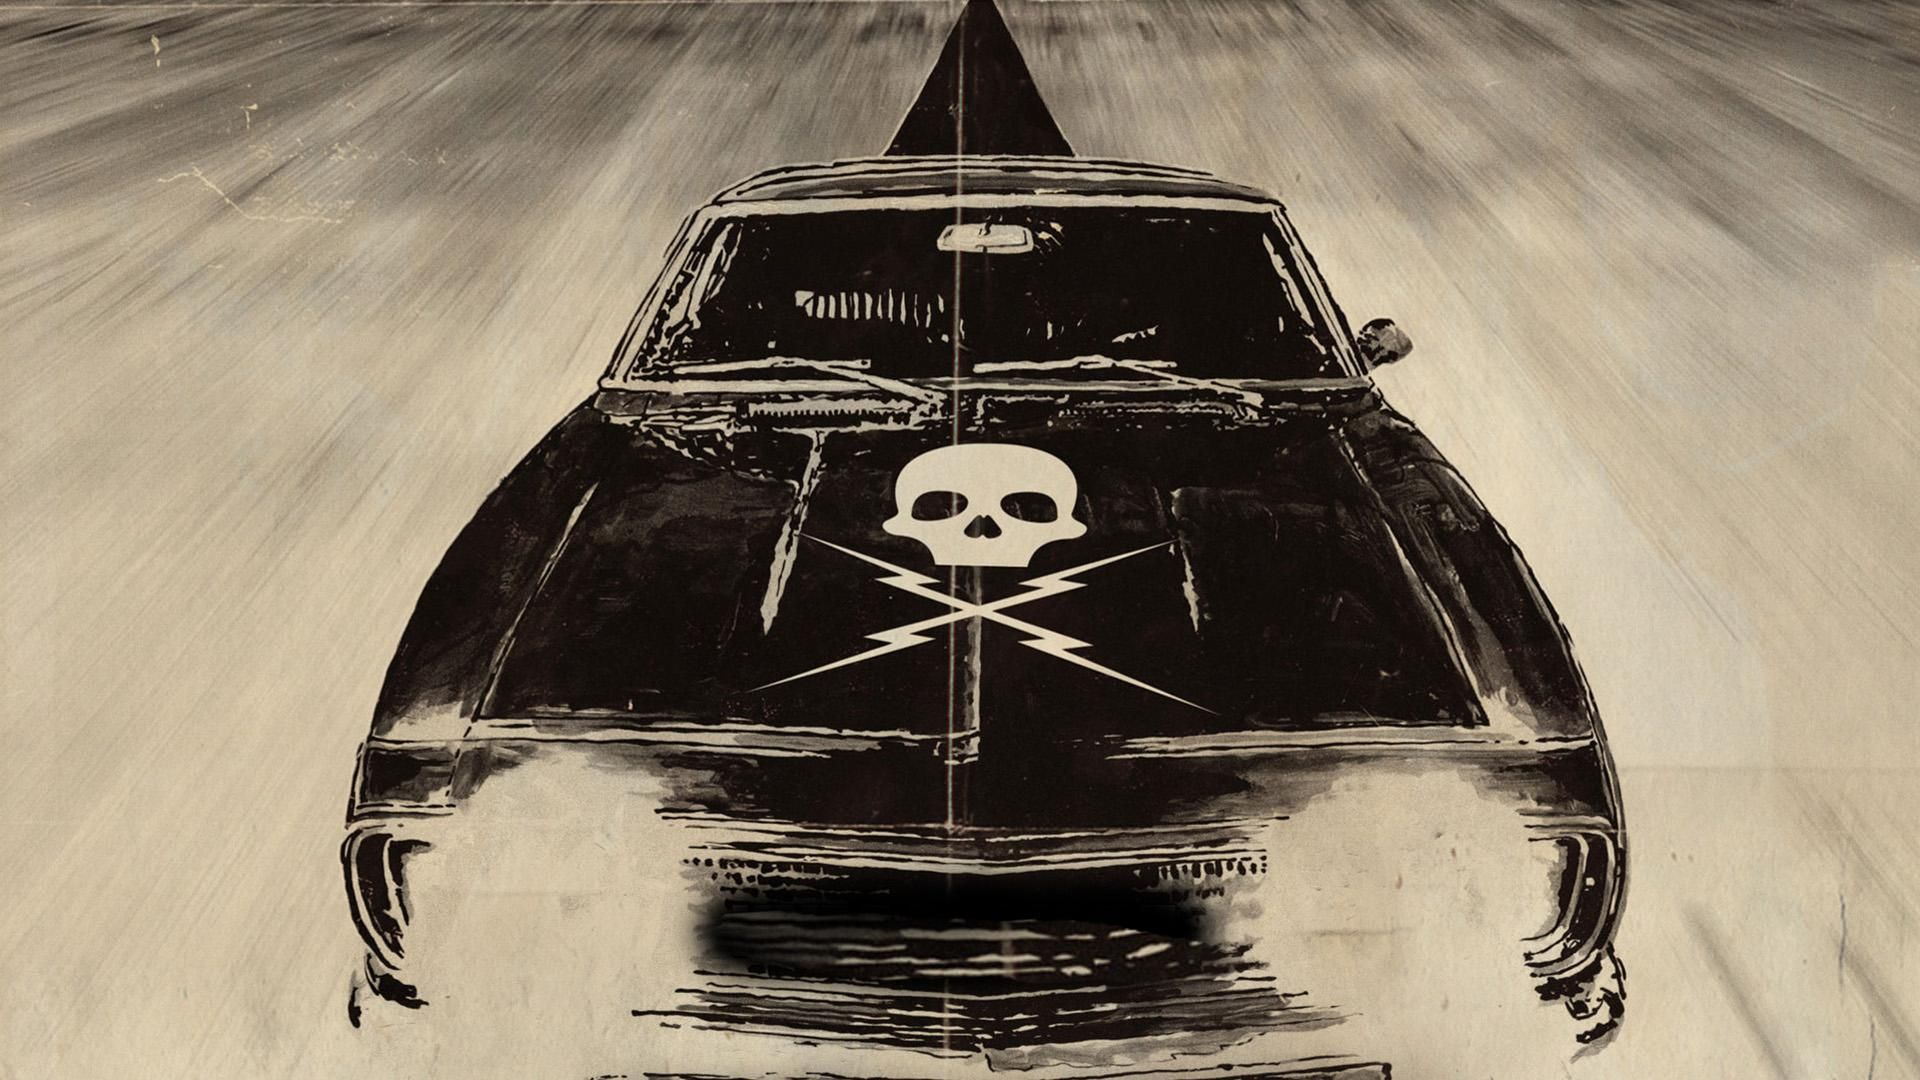 Death proof car 1970 chevy nova in the 2007 film death proof directed